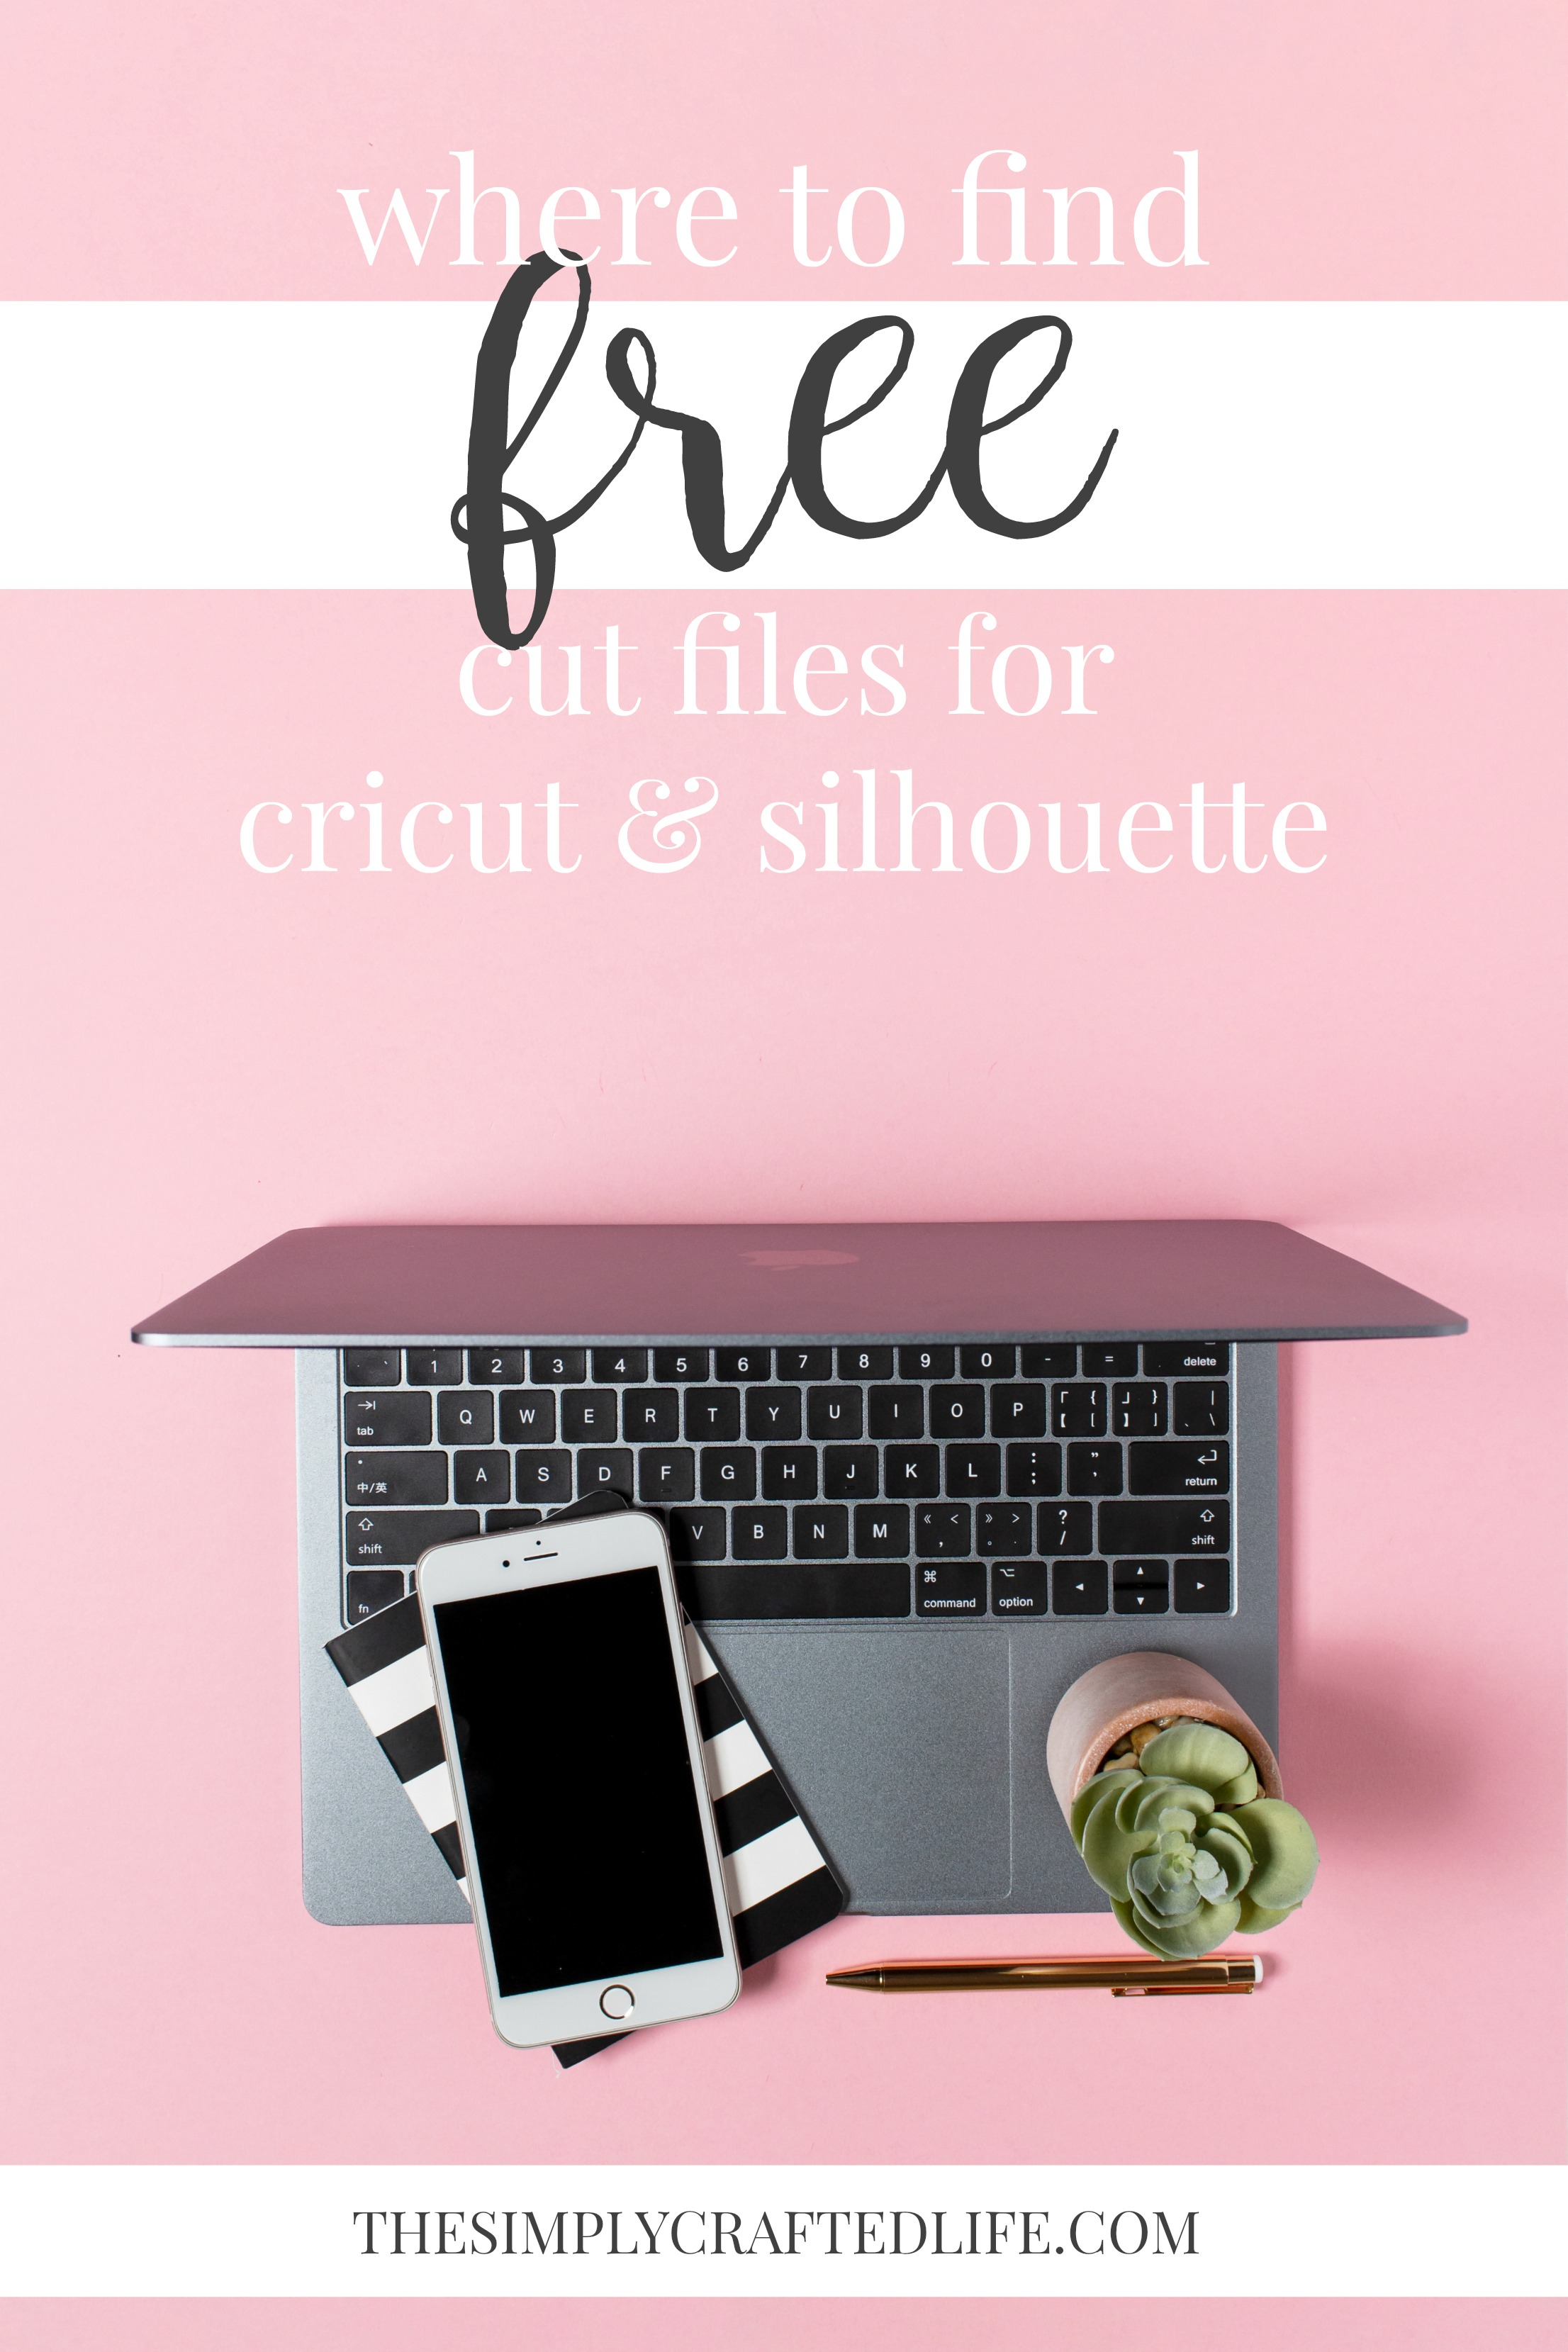 Free Svg Cut Files How To Find Them The Simply Crafted Life